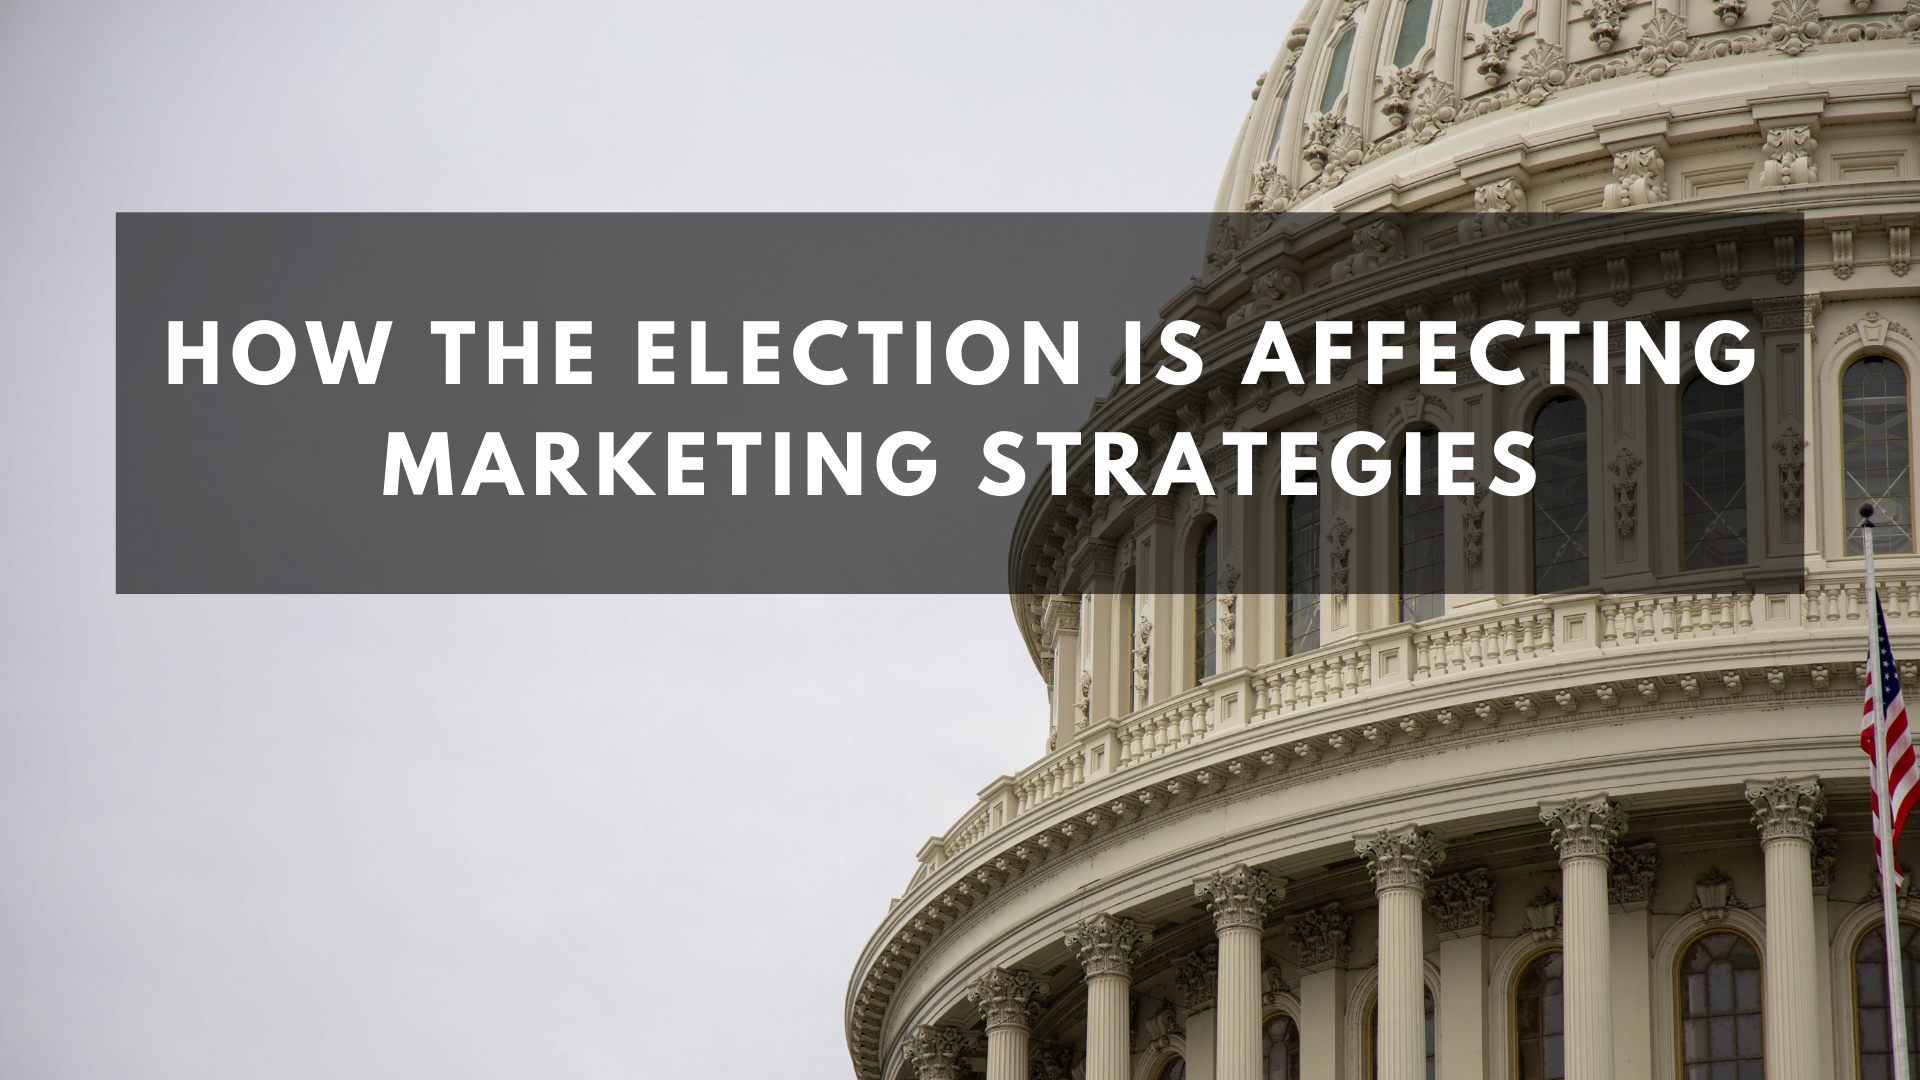 How the Election is Affecting Marketing Strategies